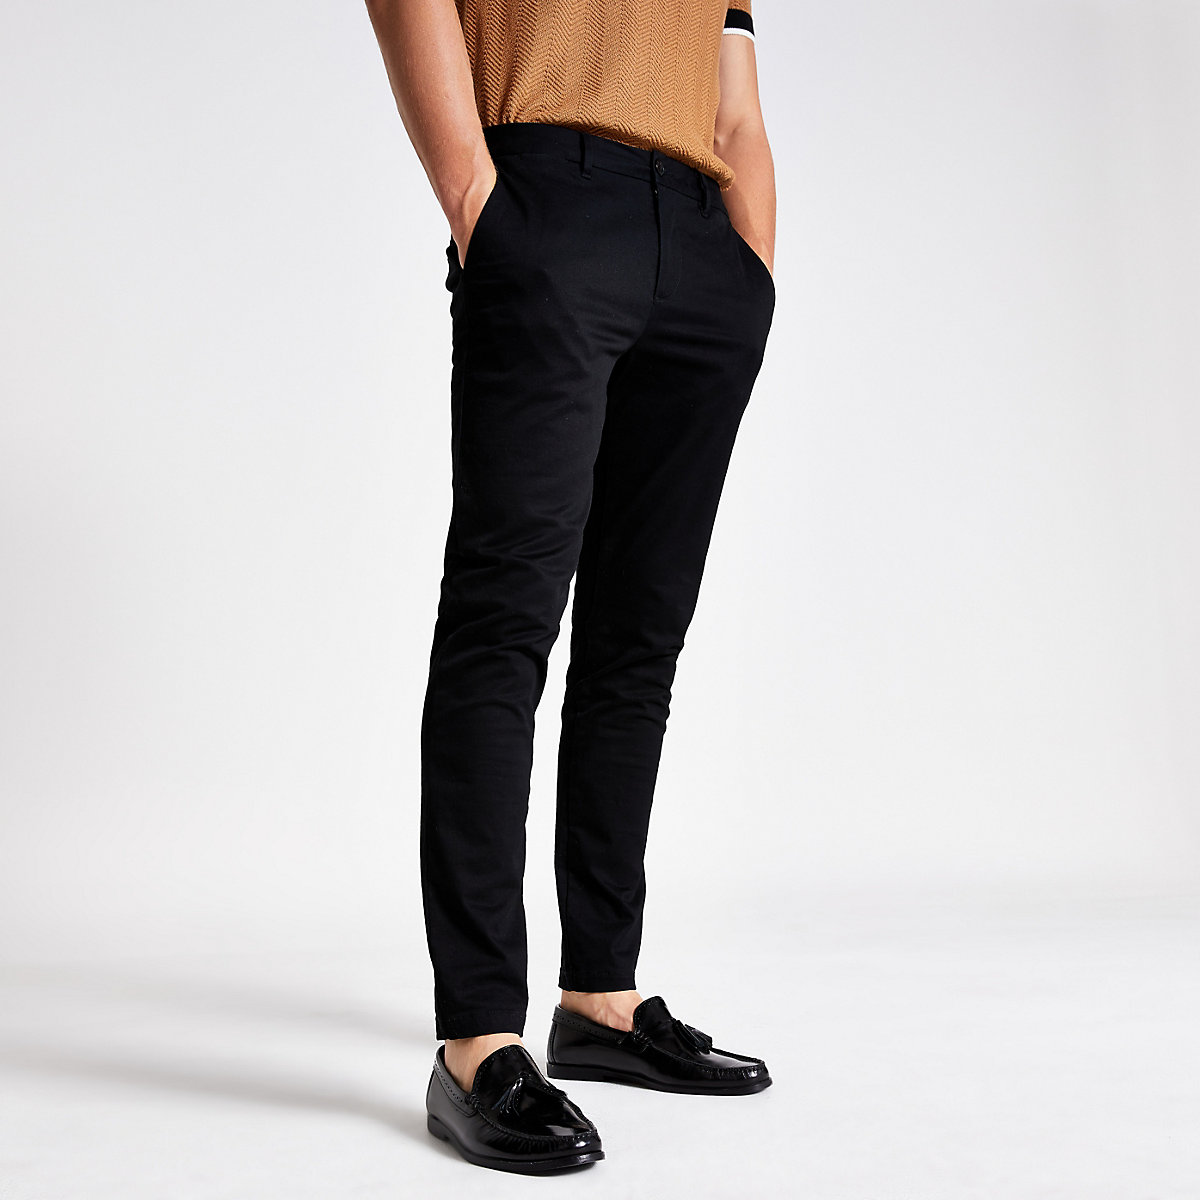 Black skinny fit chino pants